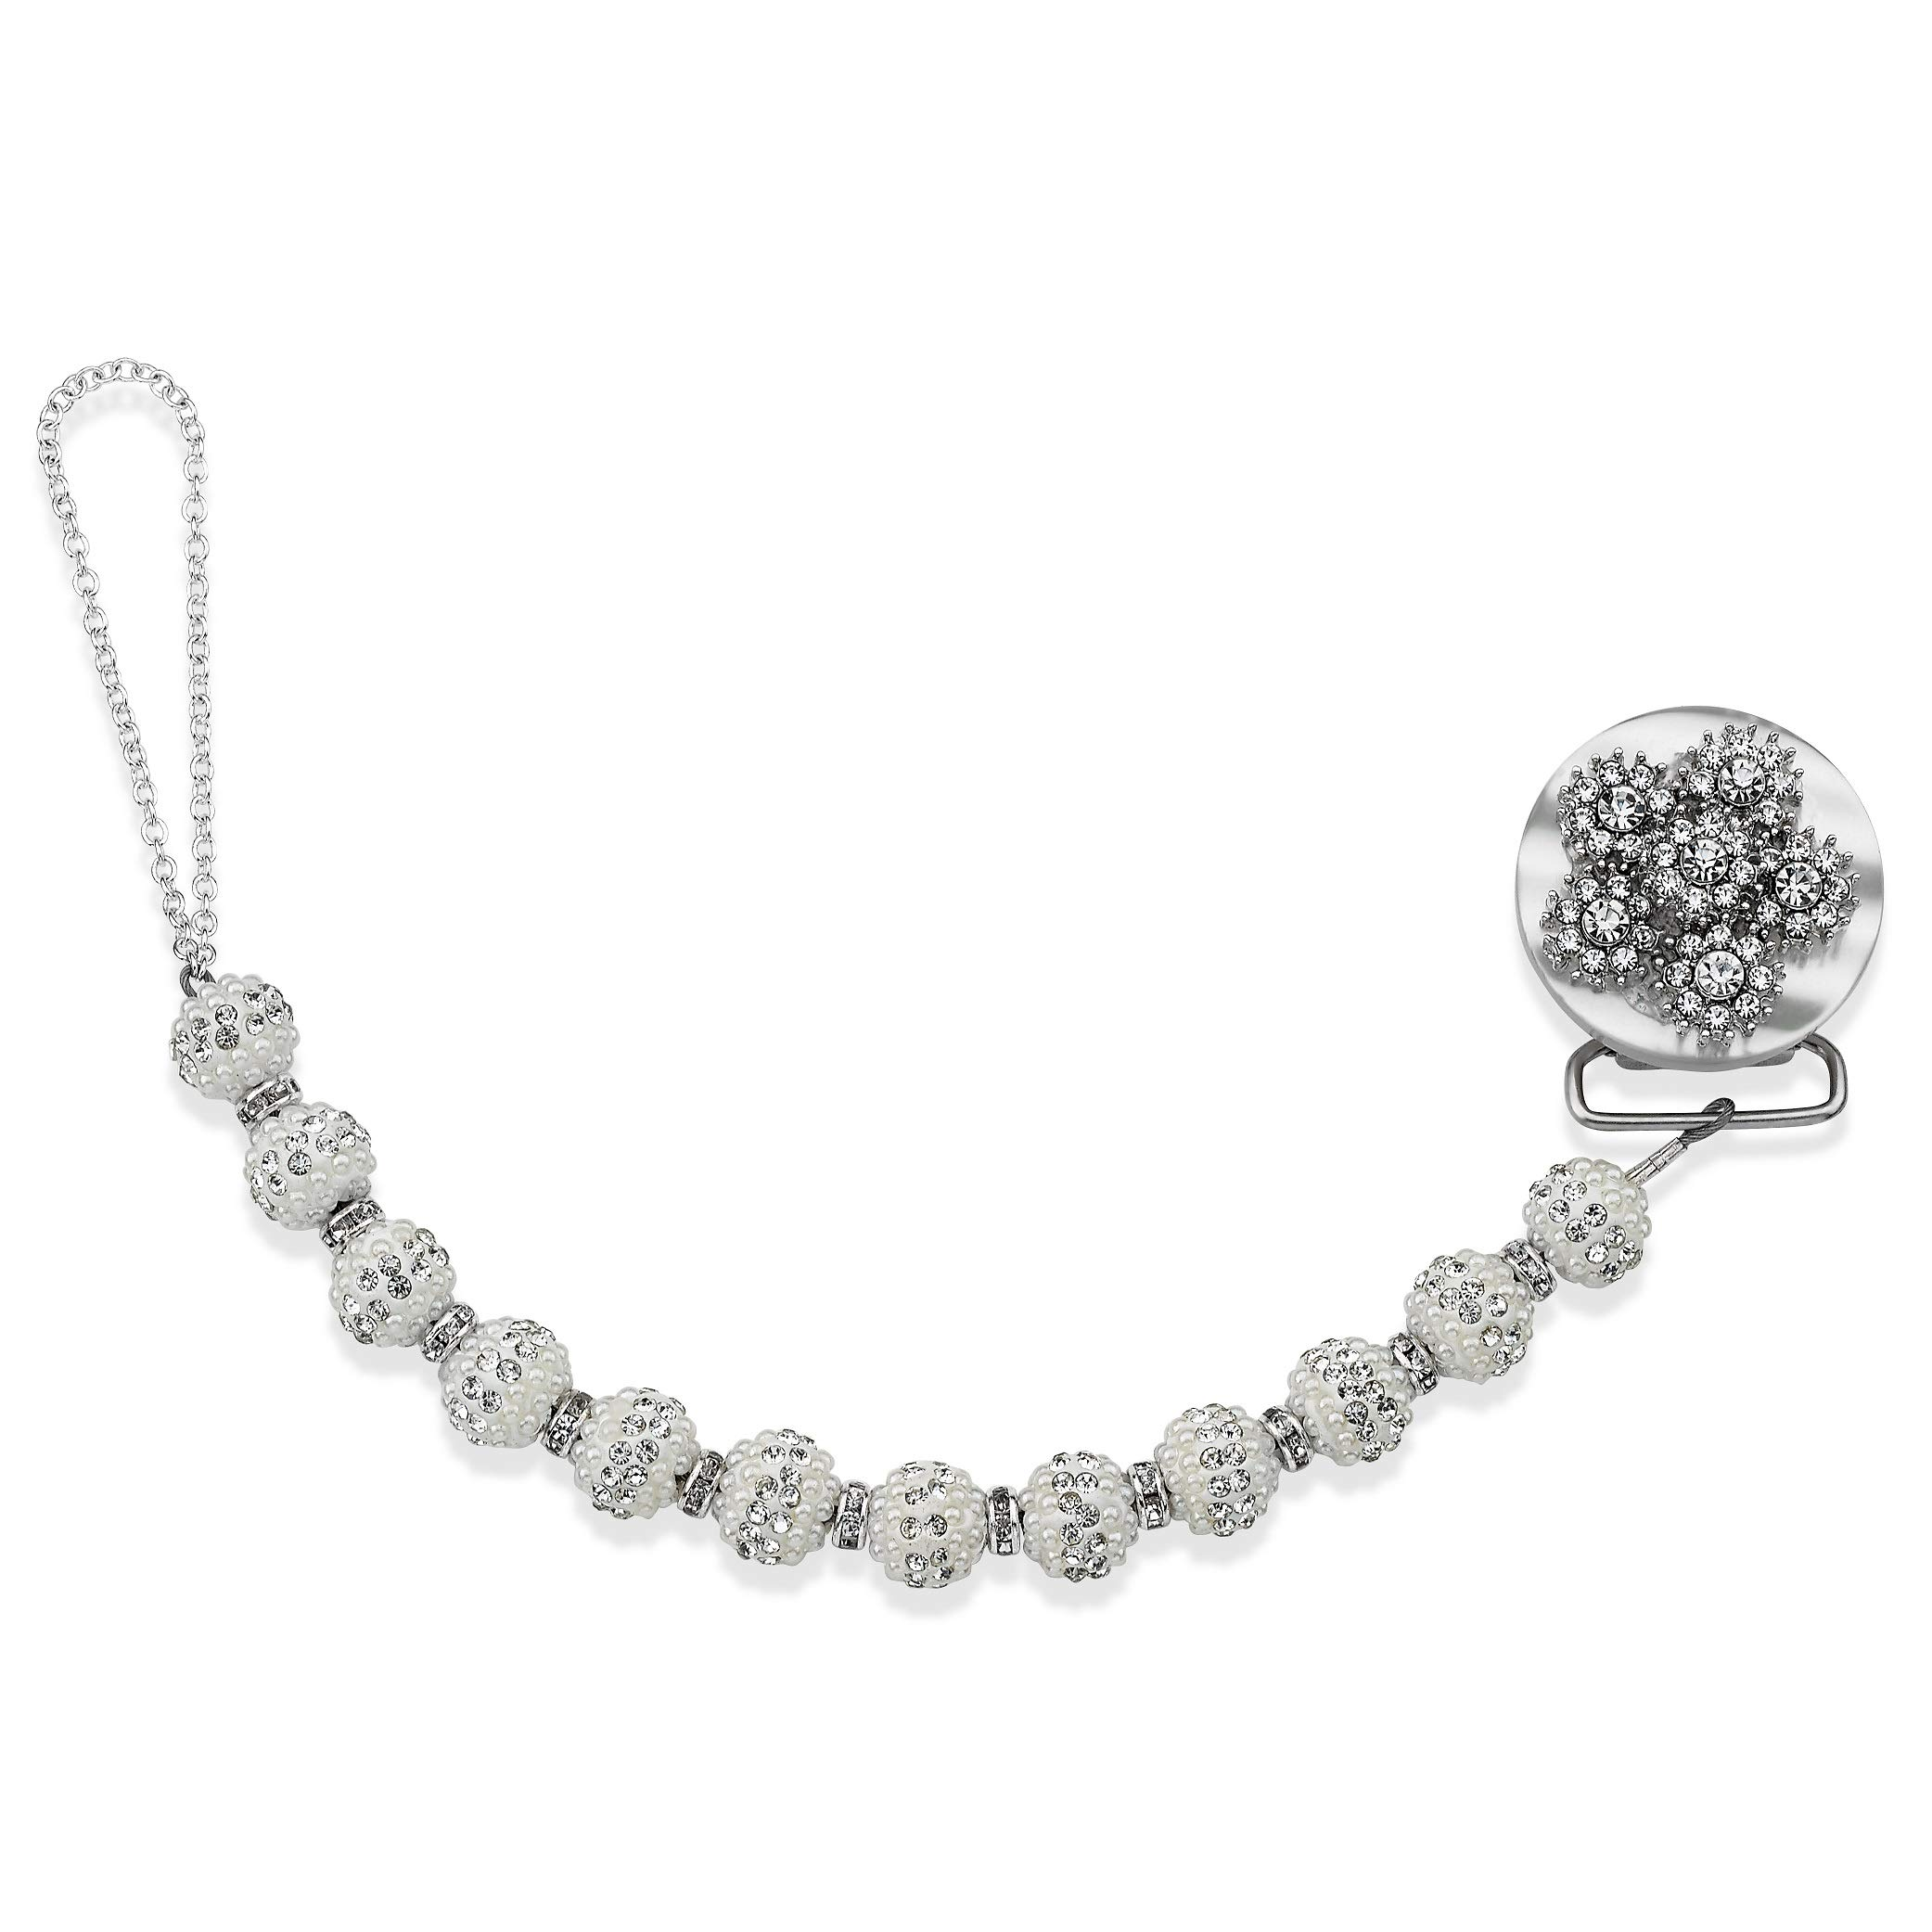 Exquisite Luxury Crystal Flower Pacifier Clip, Dummy Holder Chain, 8 inch (CRSF) by Toother